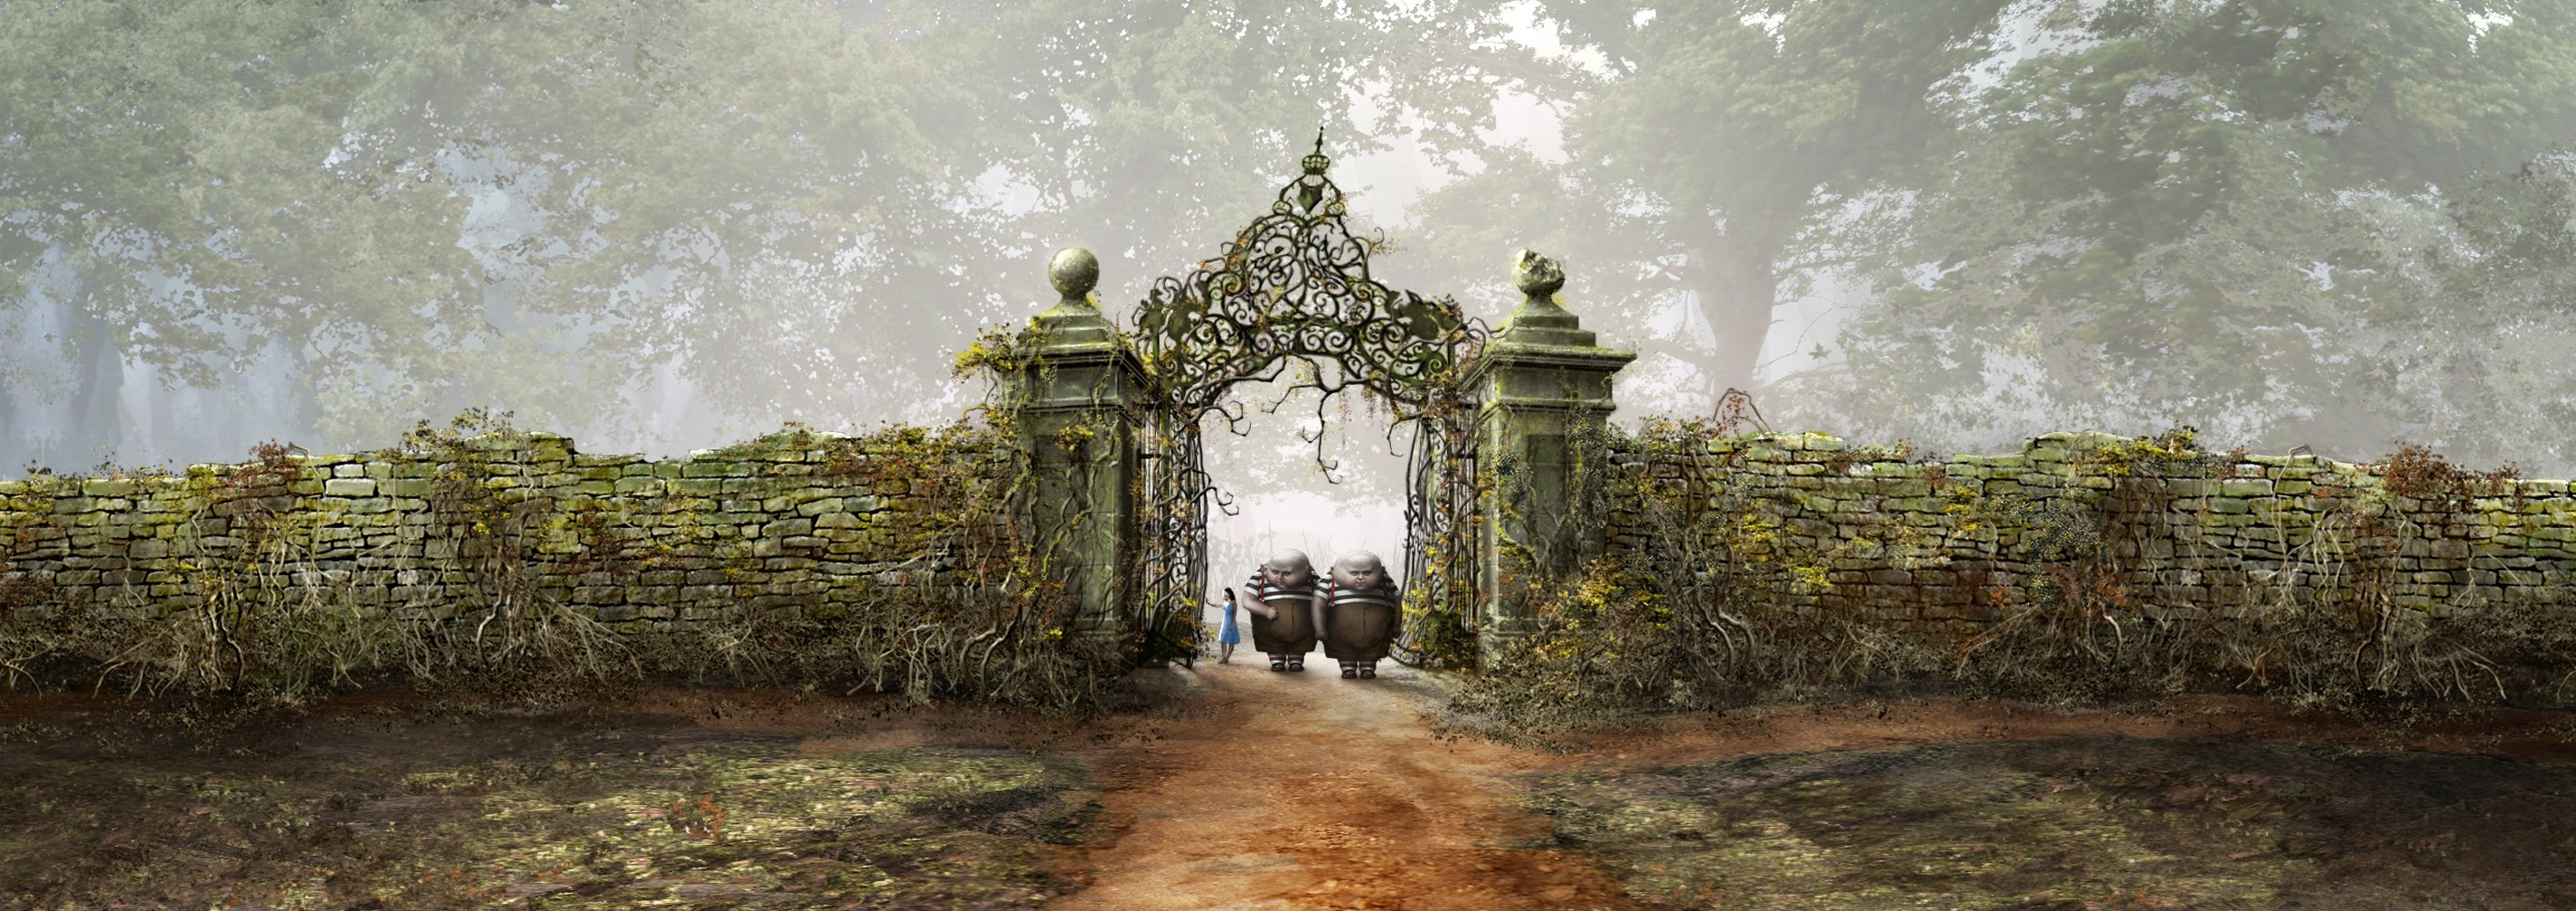 alice-in-wonderland-gate